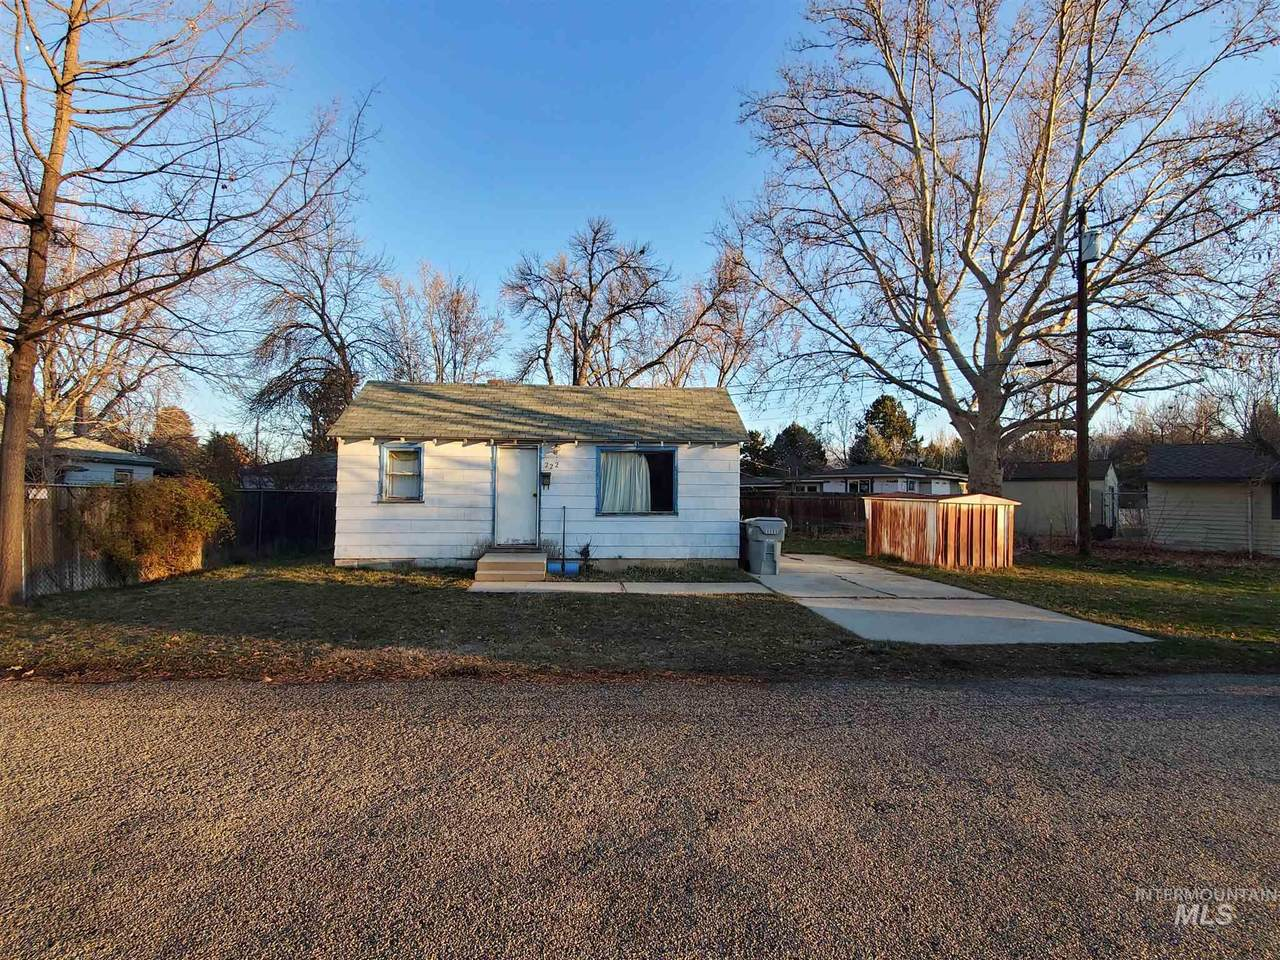 222 Chester Dr - Photo 1